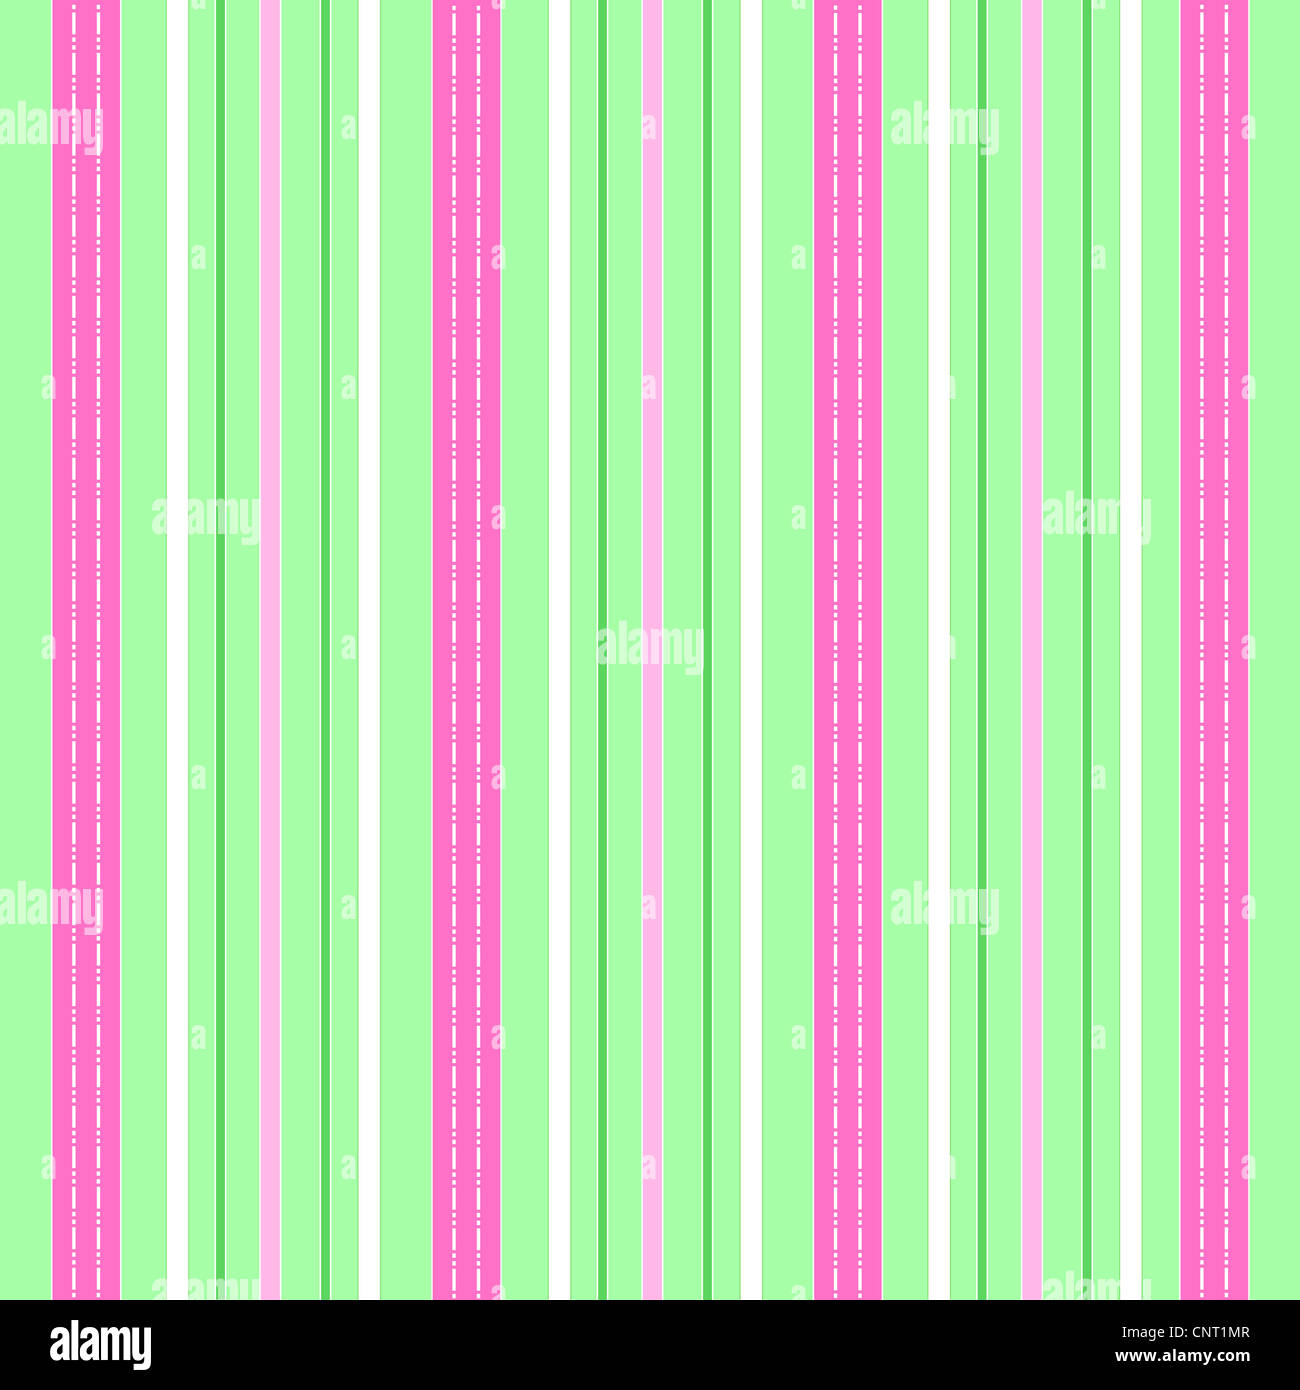 Green and pink colorful stripes pattern Stock Photo